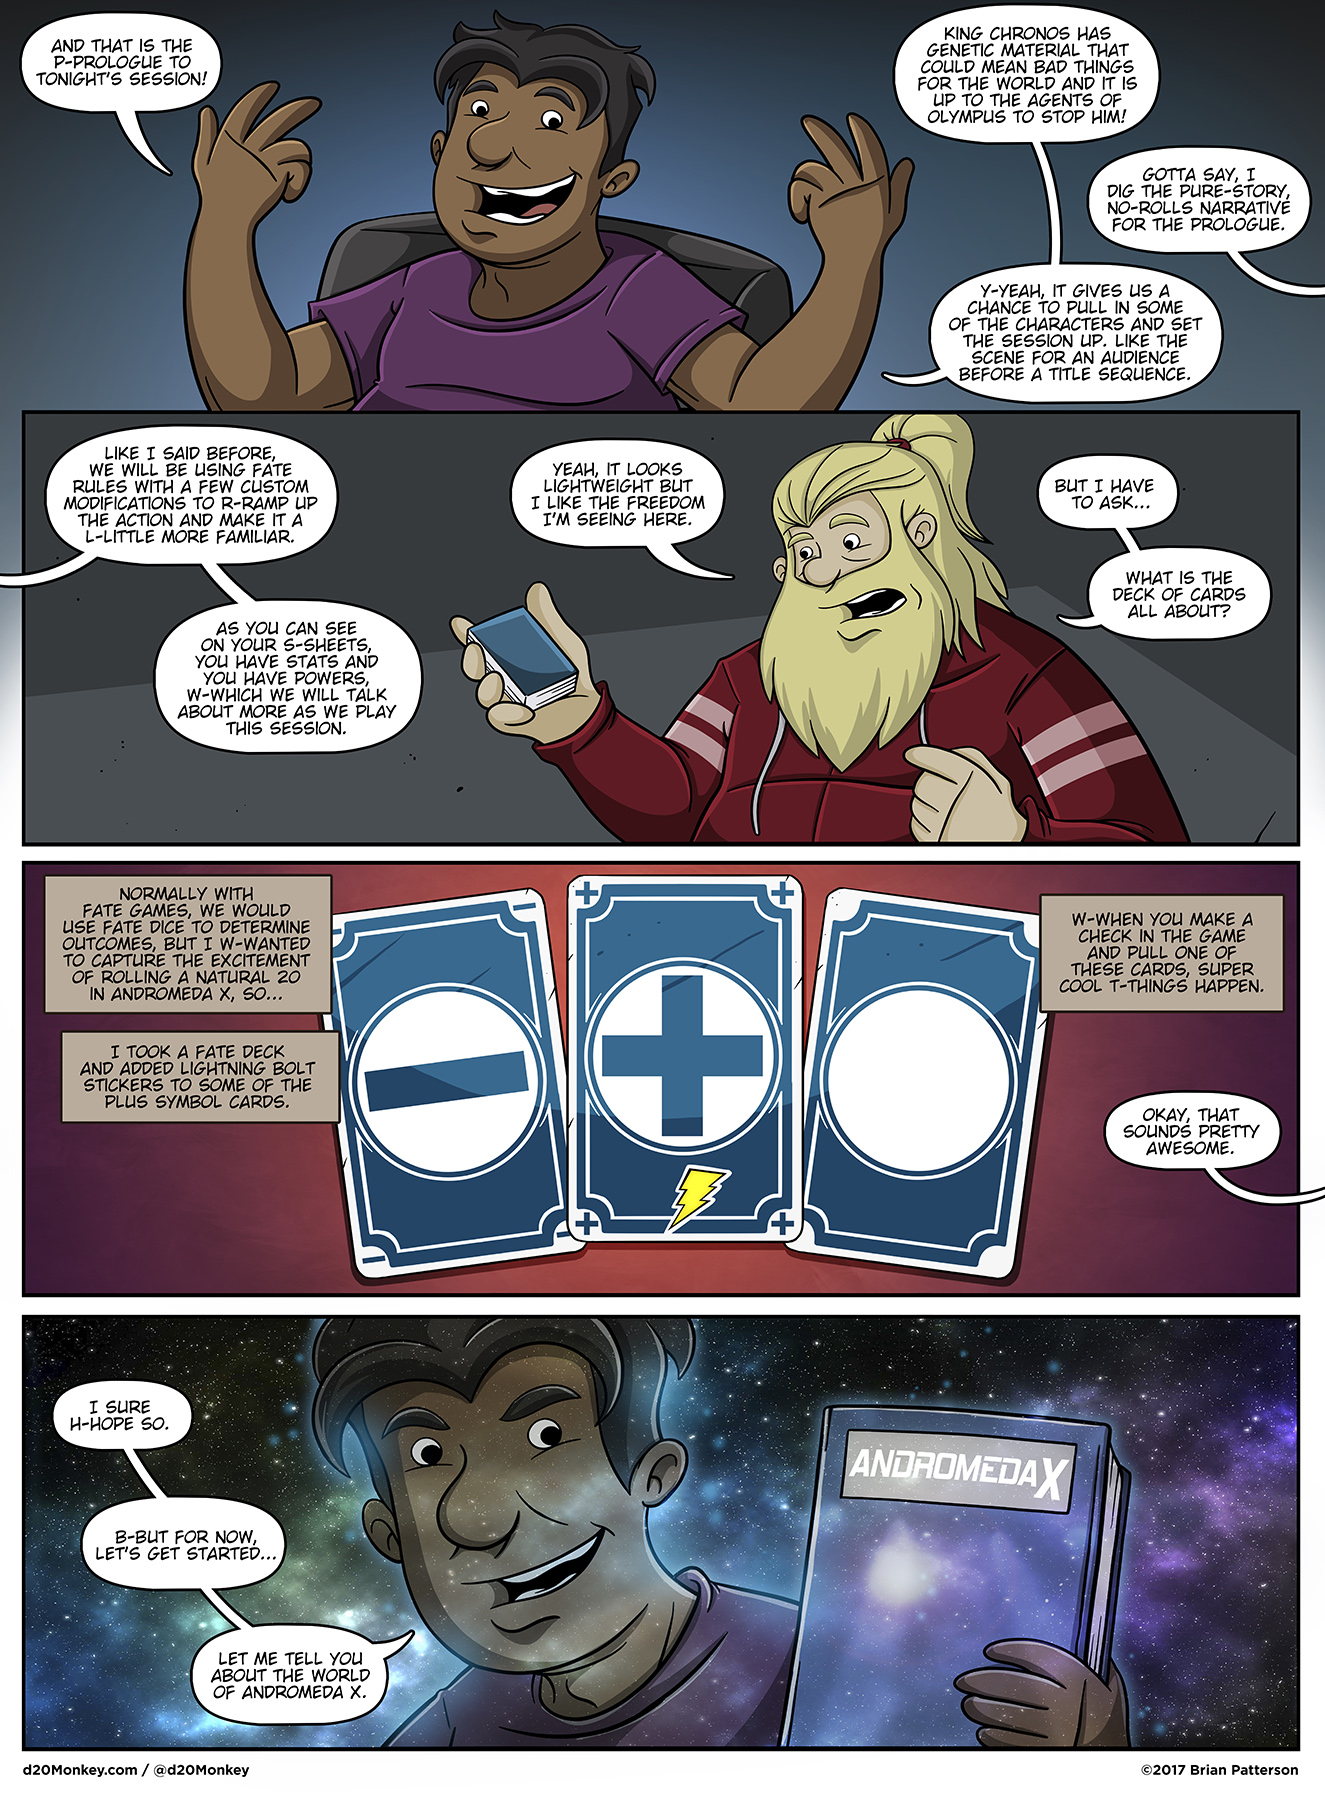 I did that last panel with the space effects just because I want to.